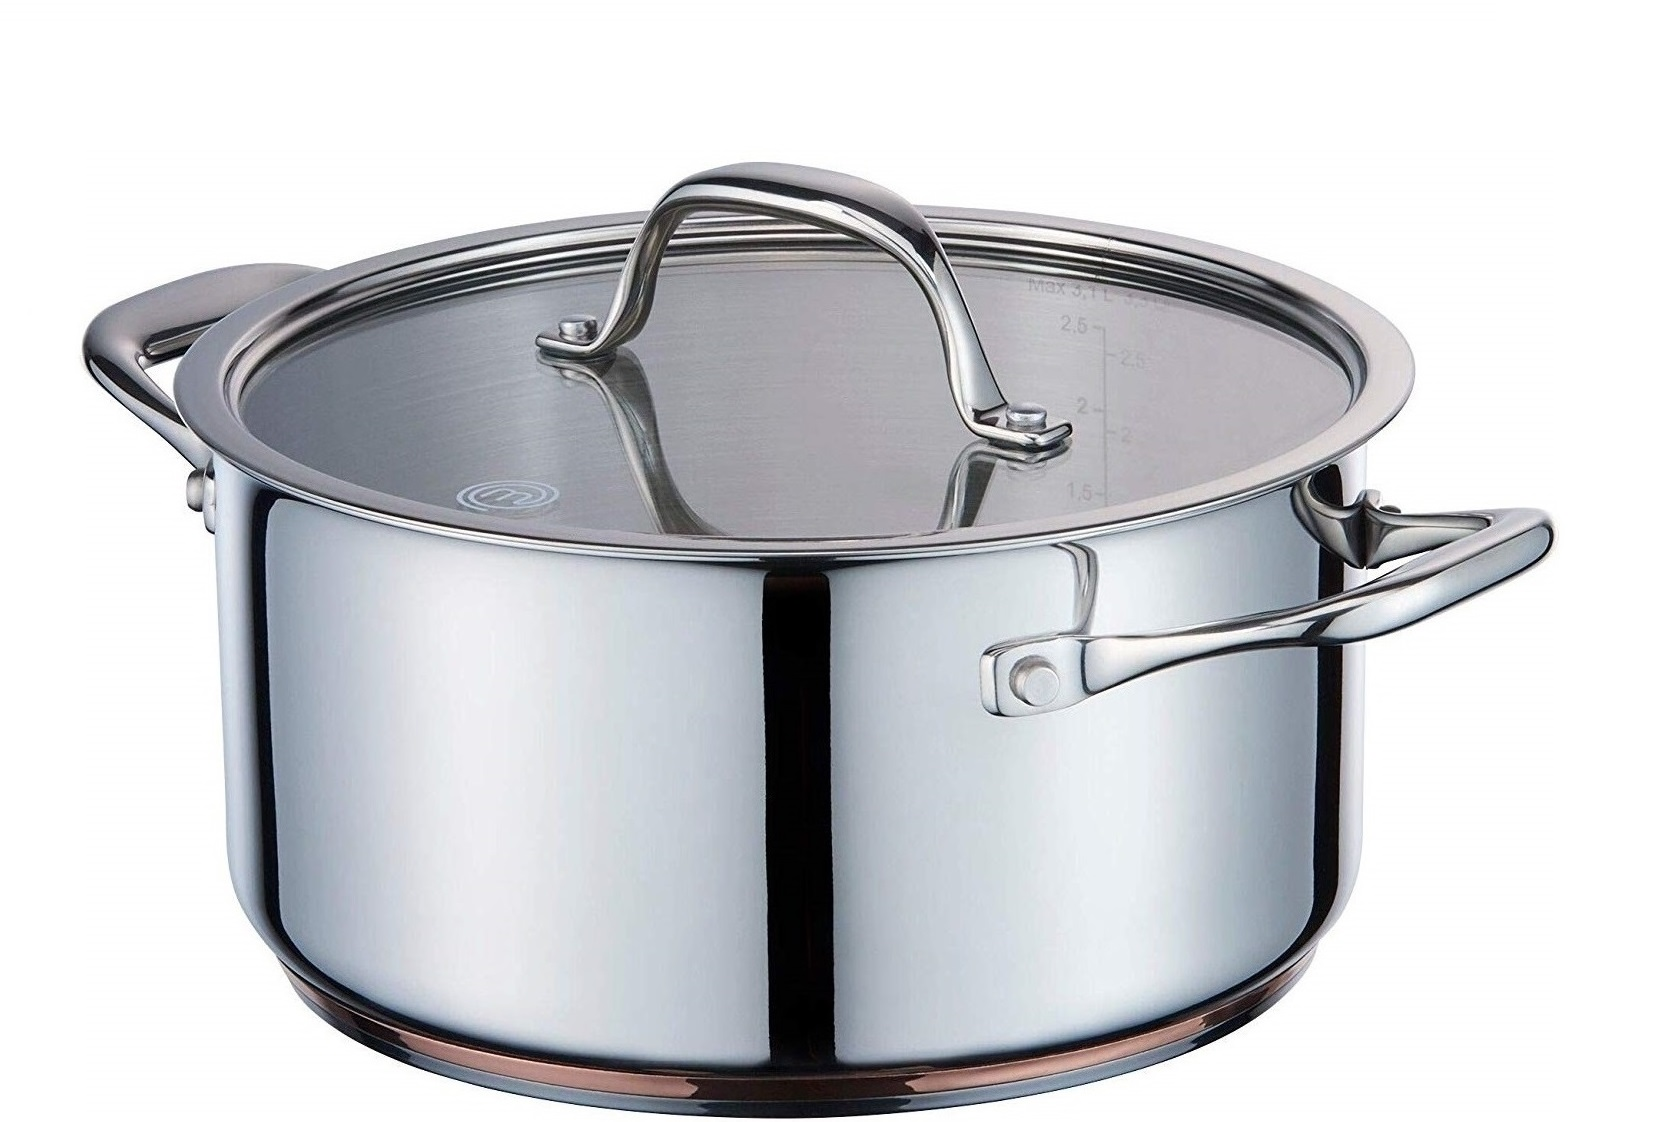 MasterChef Kookpan Copperline Cookware 3.1 Liter